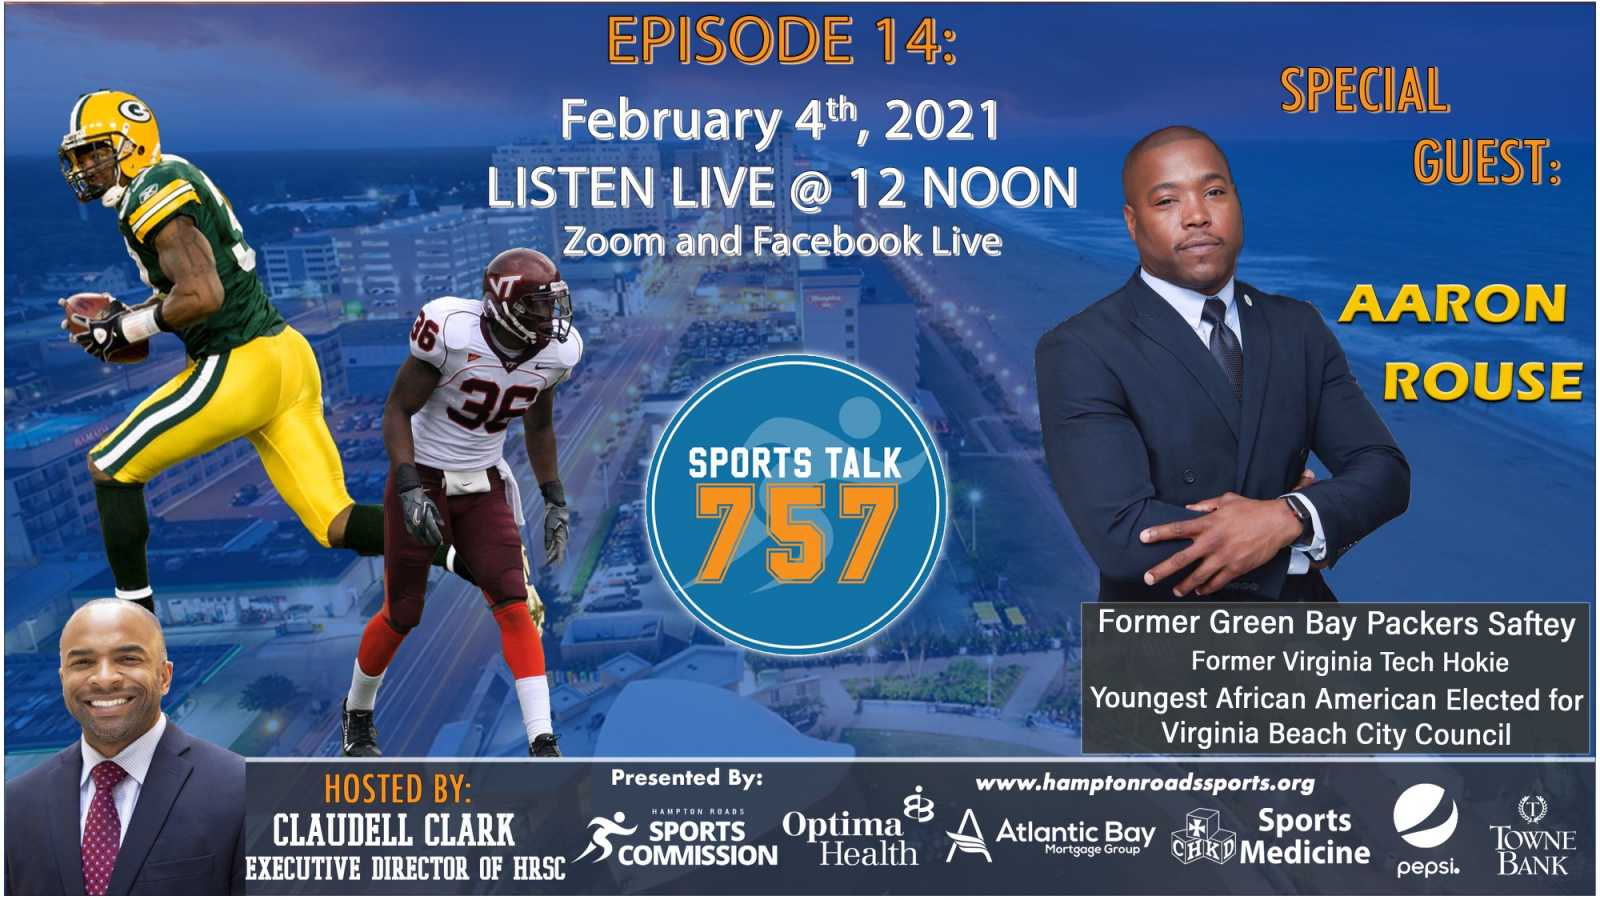 Va. Beach Councilman, Former NFL and Va. Tech Standout Aaron Rouse Joins SportsTalk 757